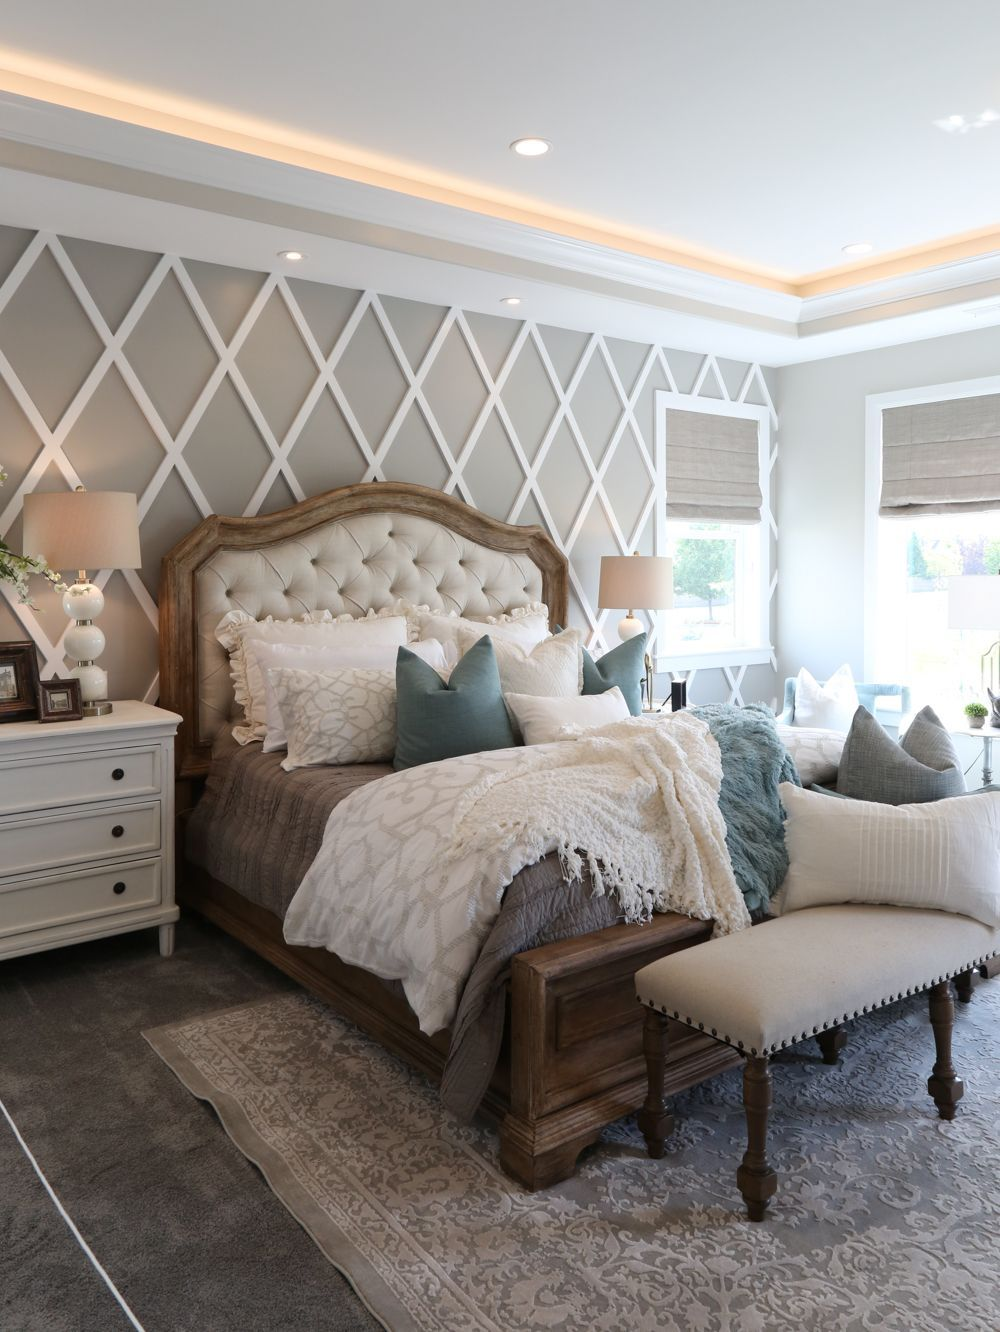 Modern French Country Bedroom Frenchmodernhome Home Decor Bedroom Master Bedrooms Decor Country Bedroom Design French country bedroom design